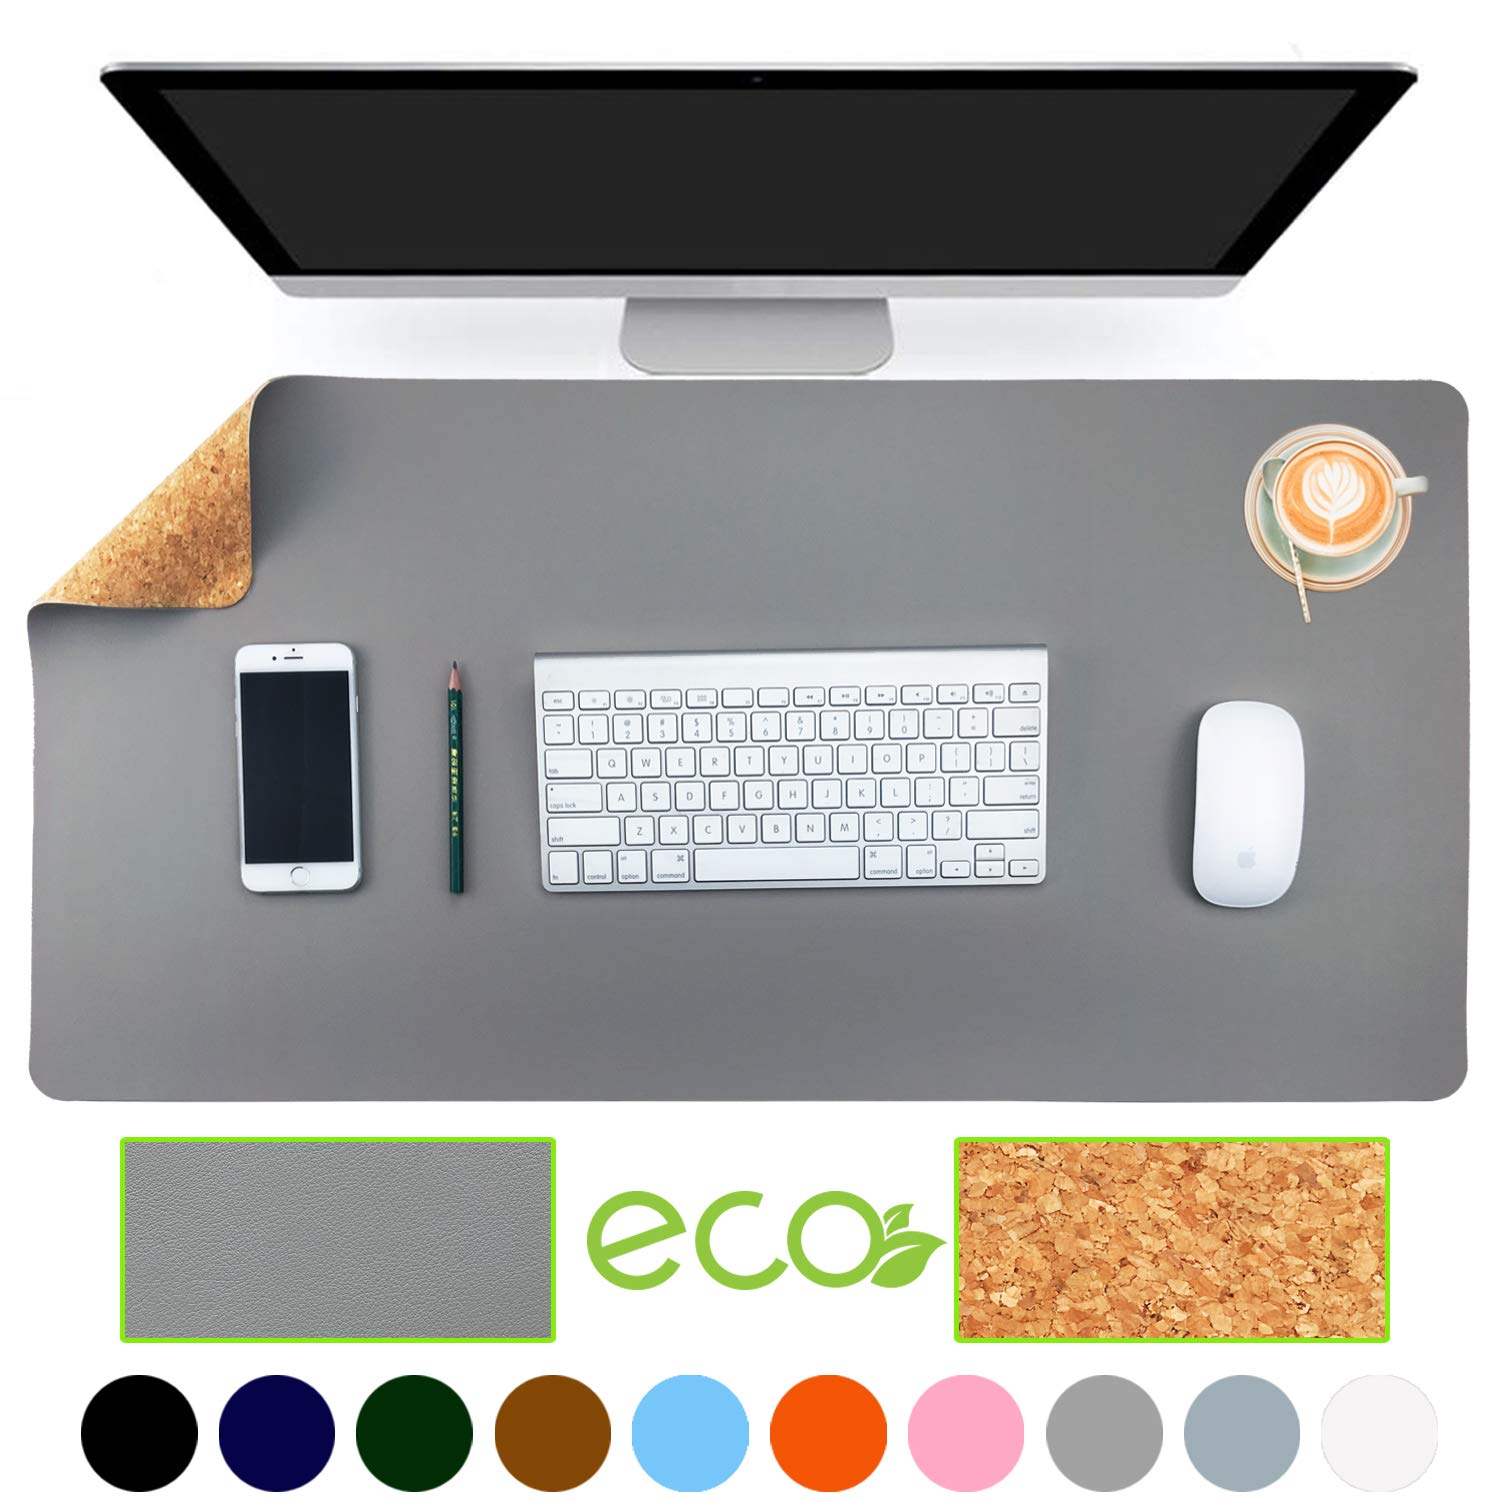 "Aothia Eco-Friendly Natural Cork & Leather Double-Sided Office Desk Mat 31.5"" x 15.7"" Mouse Pad Smooth Surface Soft Easy Clean Waterproof PU Leather Desk Protector for Office/Home Gaming (Gray)"